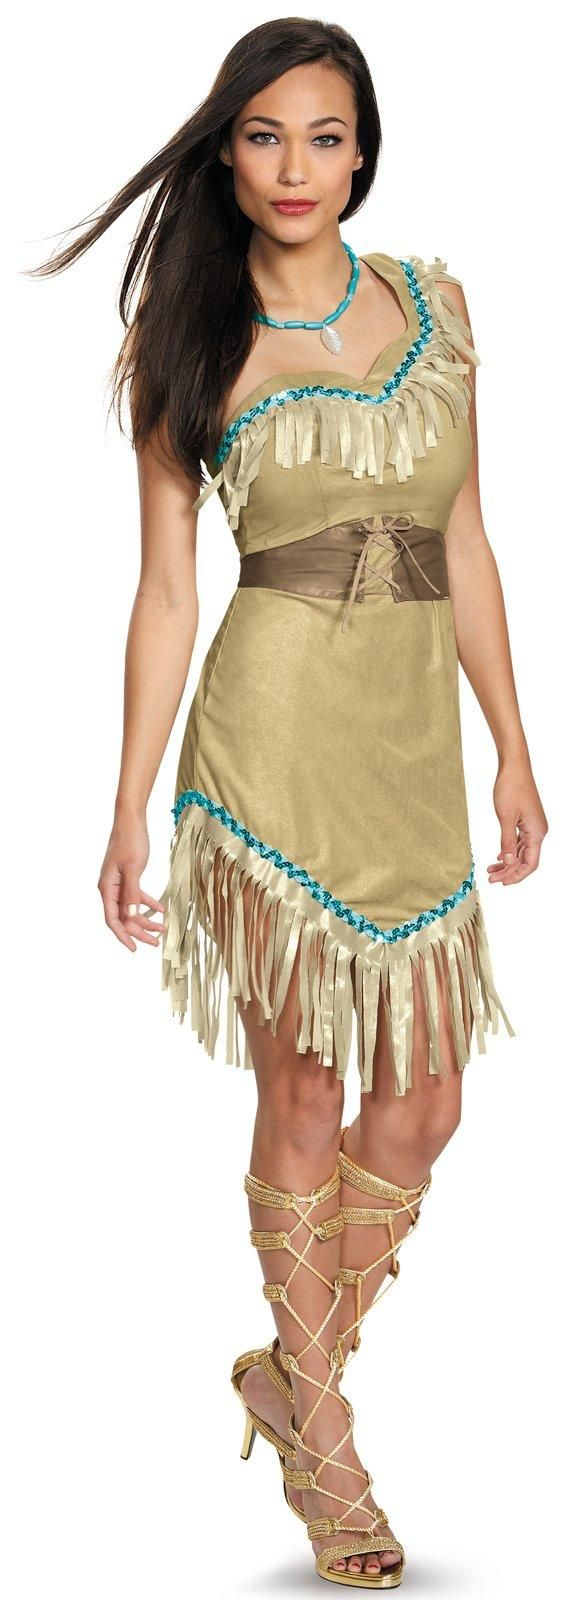 56 best costumes ecb pocahontas images on pinterest pocahontas disney princess deluxe womens pocahontas costume diy pocahontas solutioingenieria Gallery